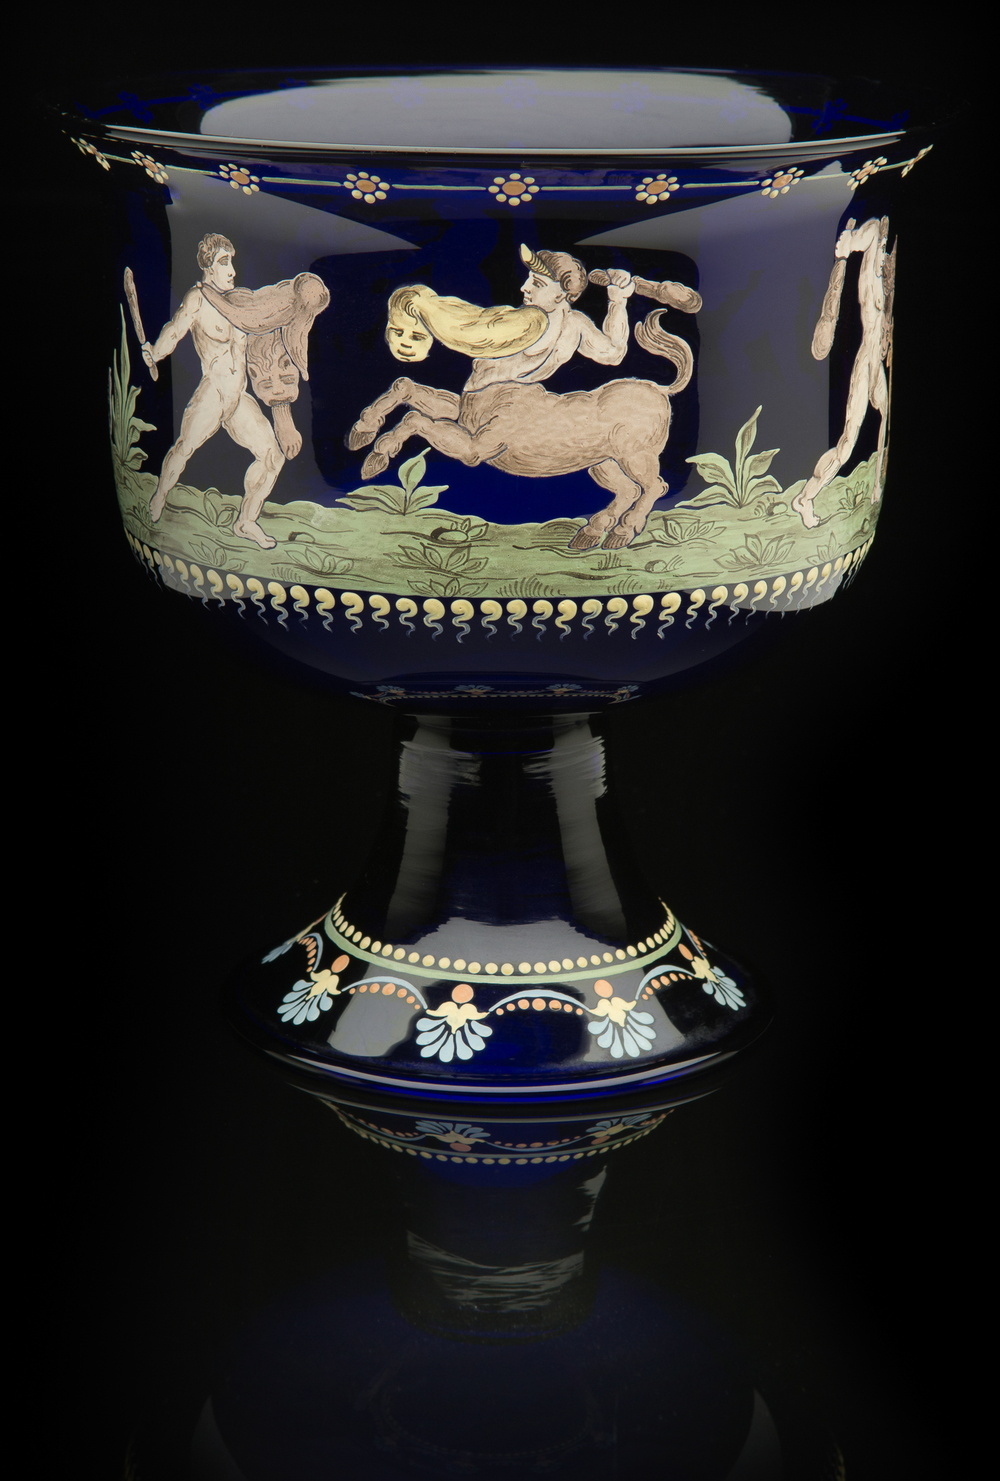 Francisco Toso Borella,  Vase: Labors of Hercules  (1900-1920, glass and enamel, 8 x 7 1/2 x 7 1/2 inches), VV.479